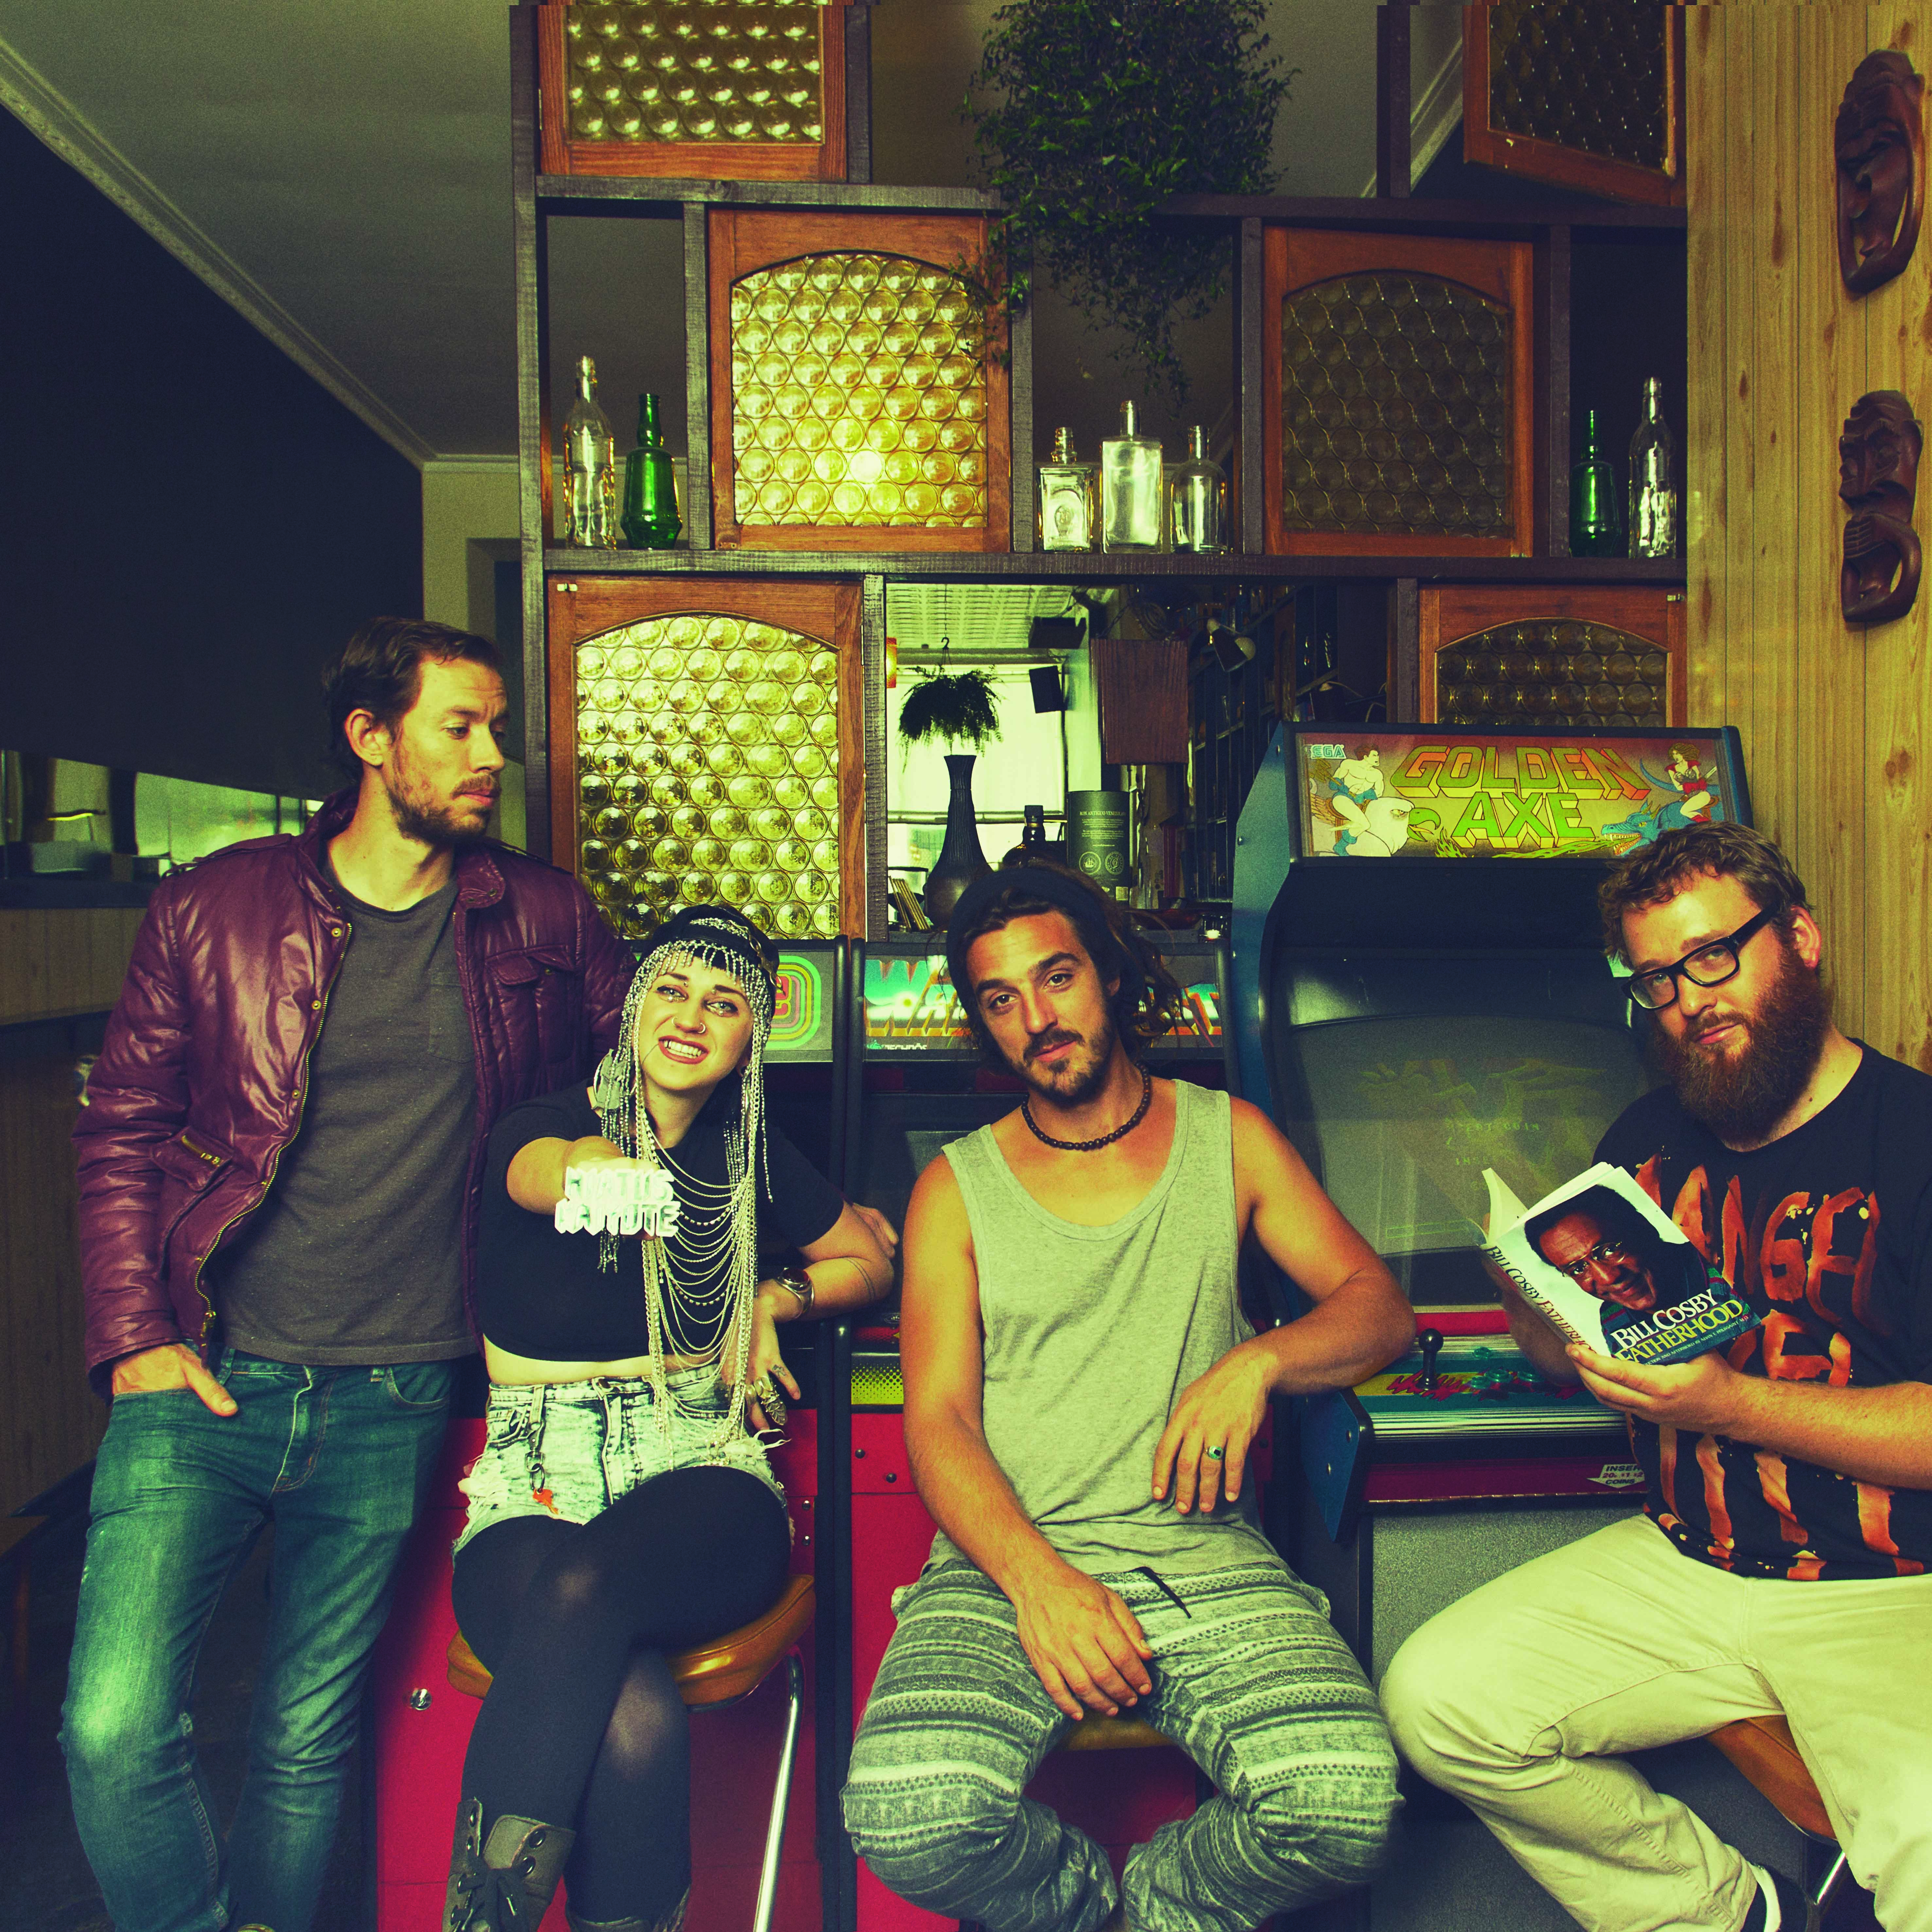 Unlock Special Message from Hiatus Kaiyote Image